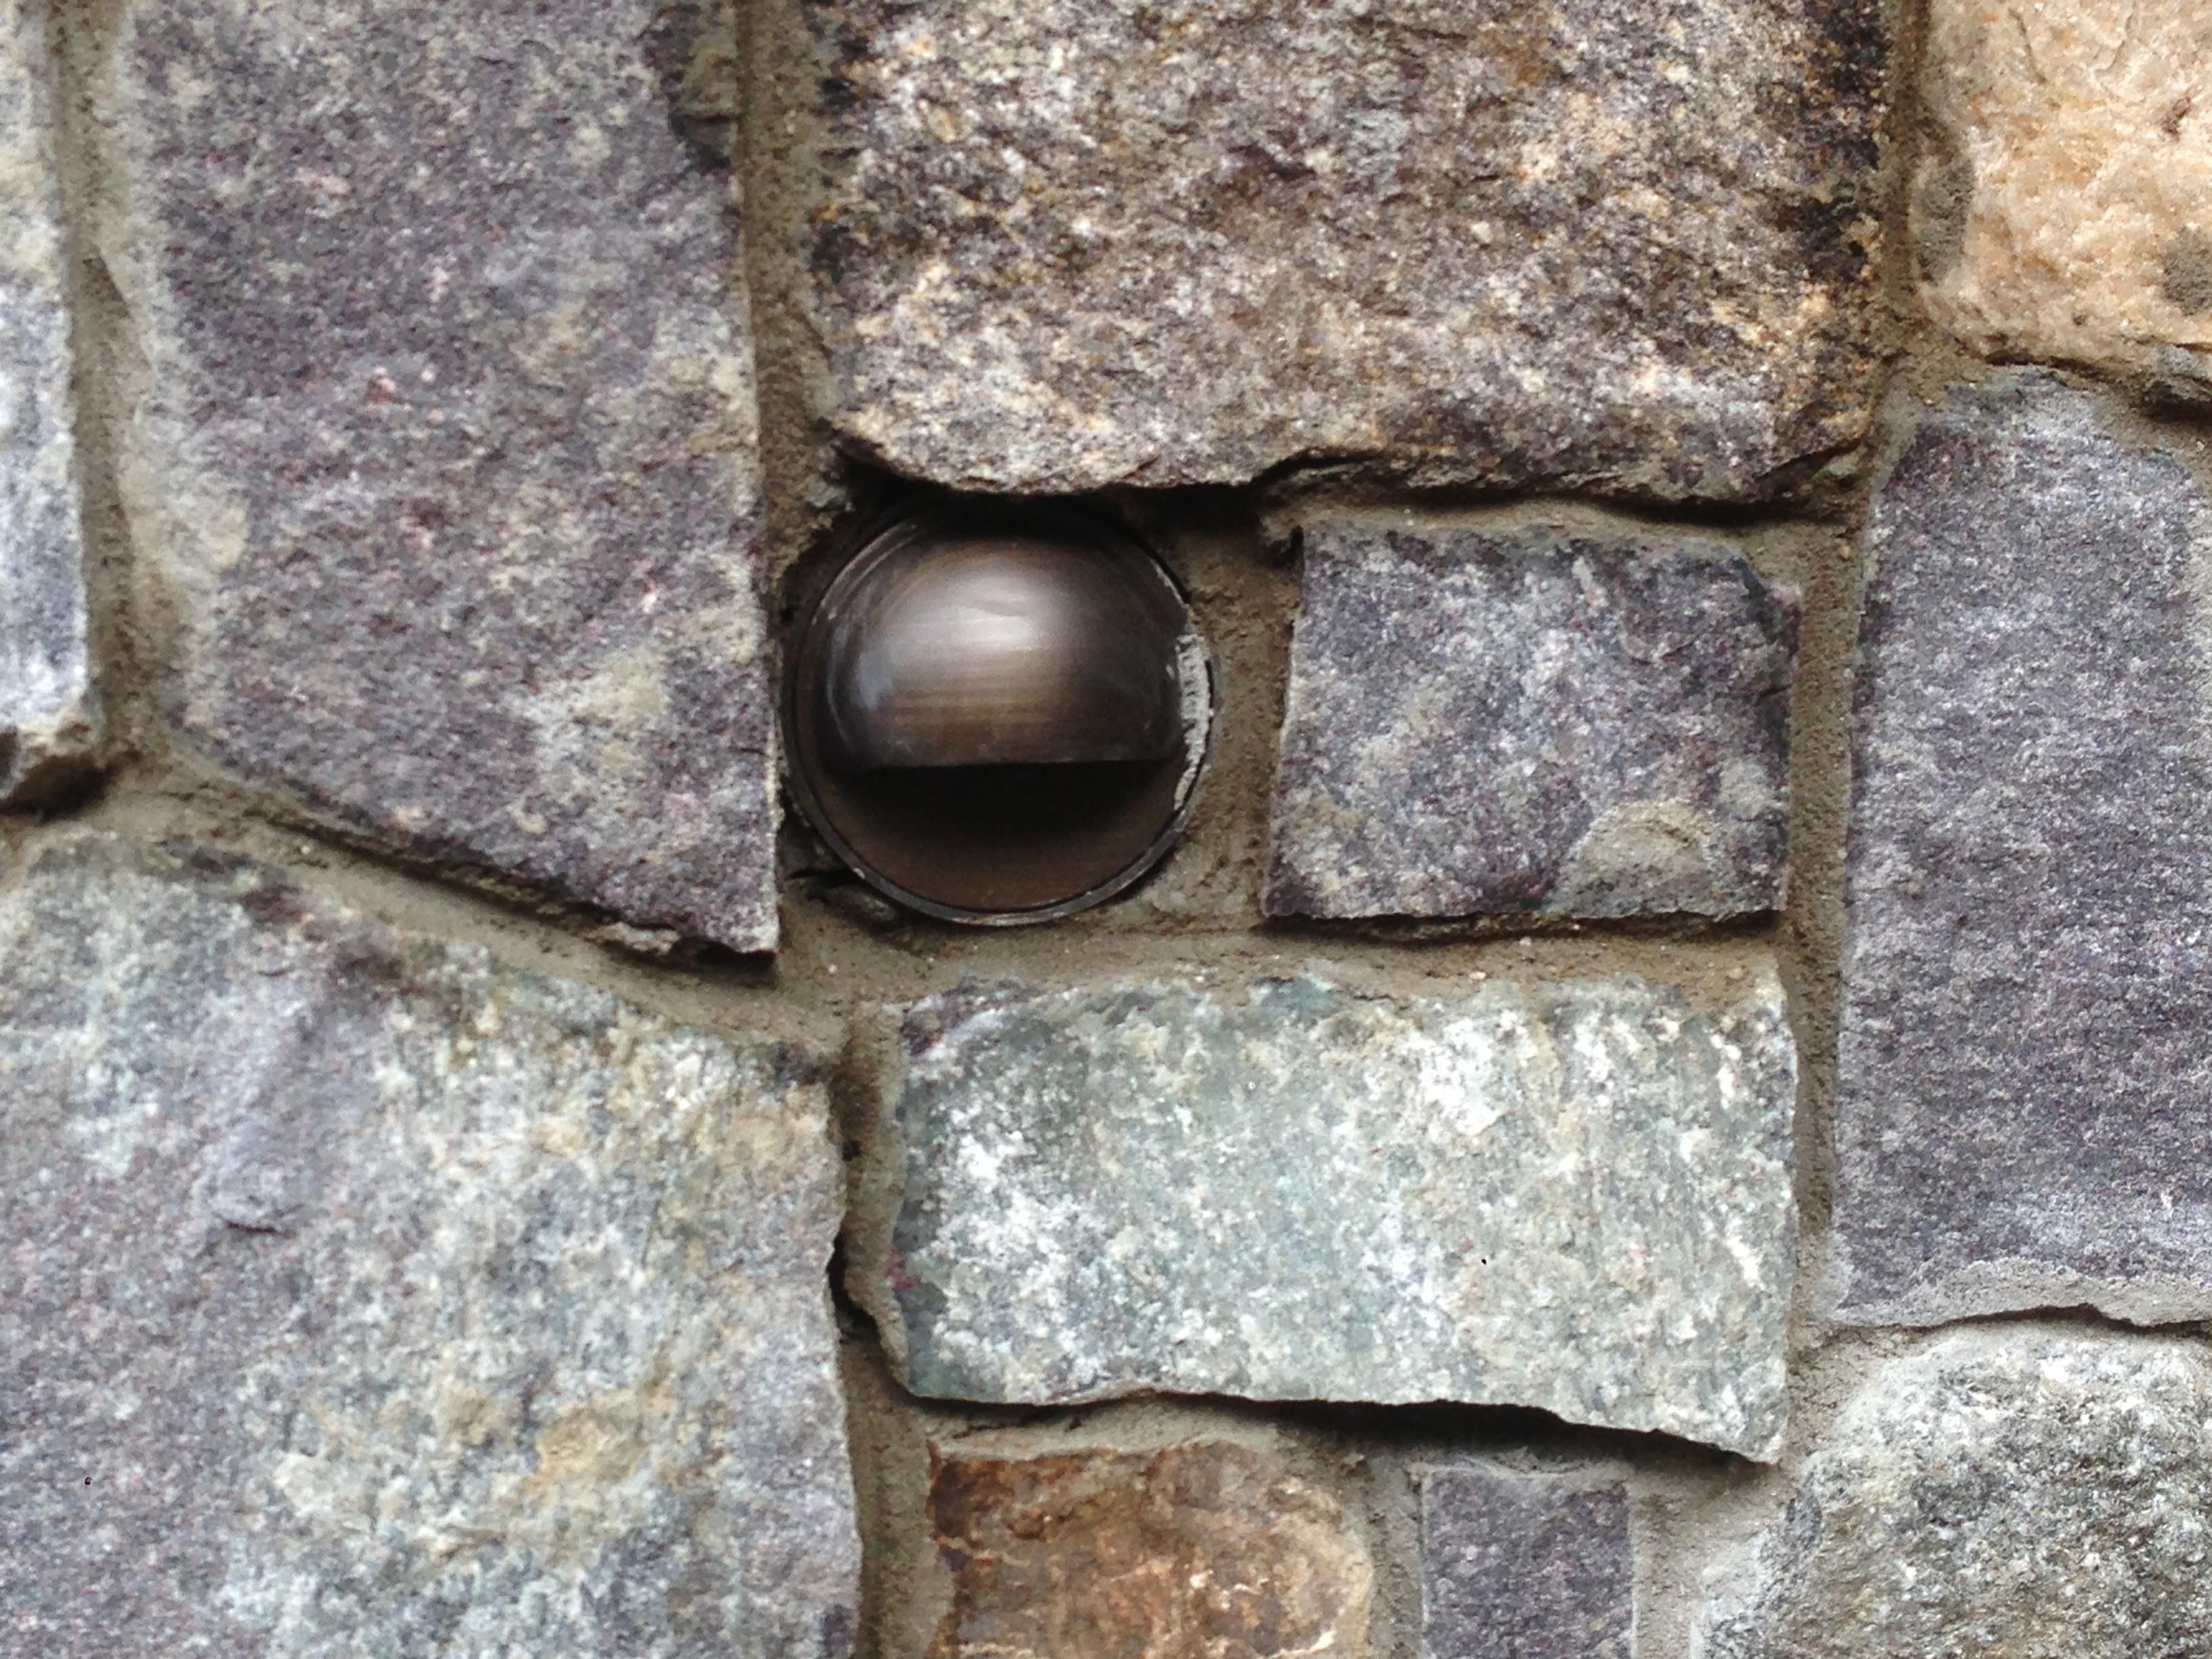 Artistic Landscapes Blog » Round Landscape Light In A Stone Wall Within Outdoor Stone Wall Lighting (View 5 of 15)